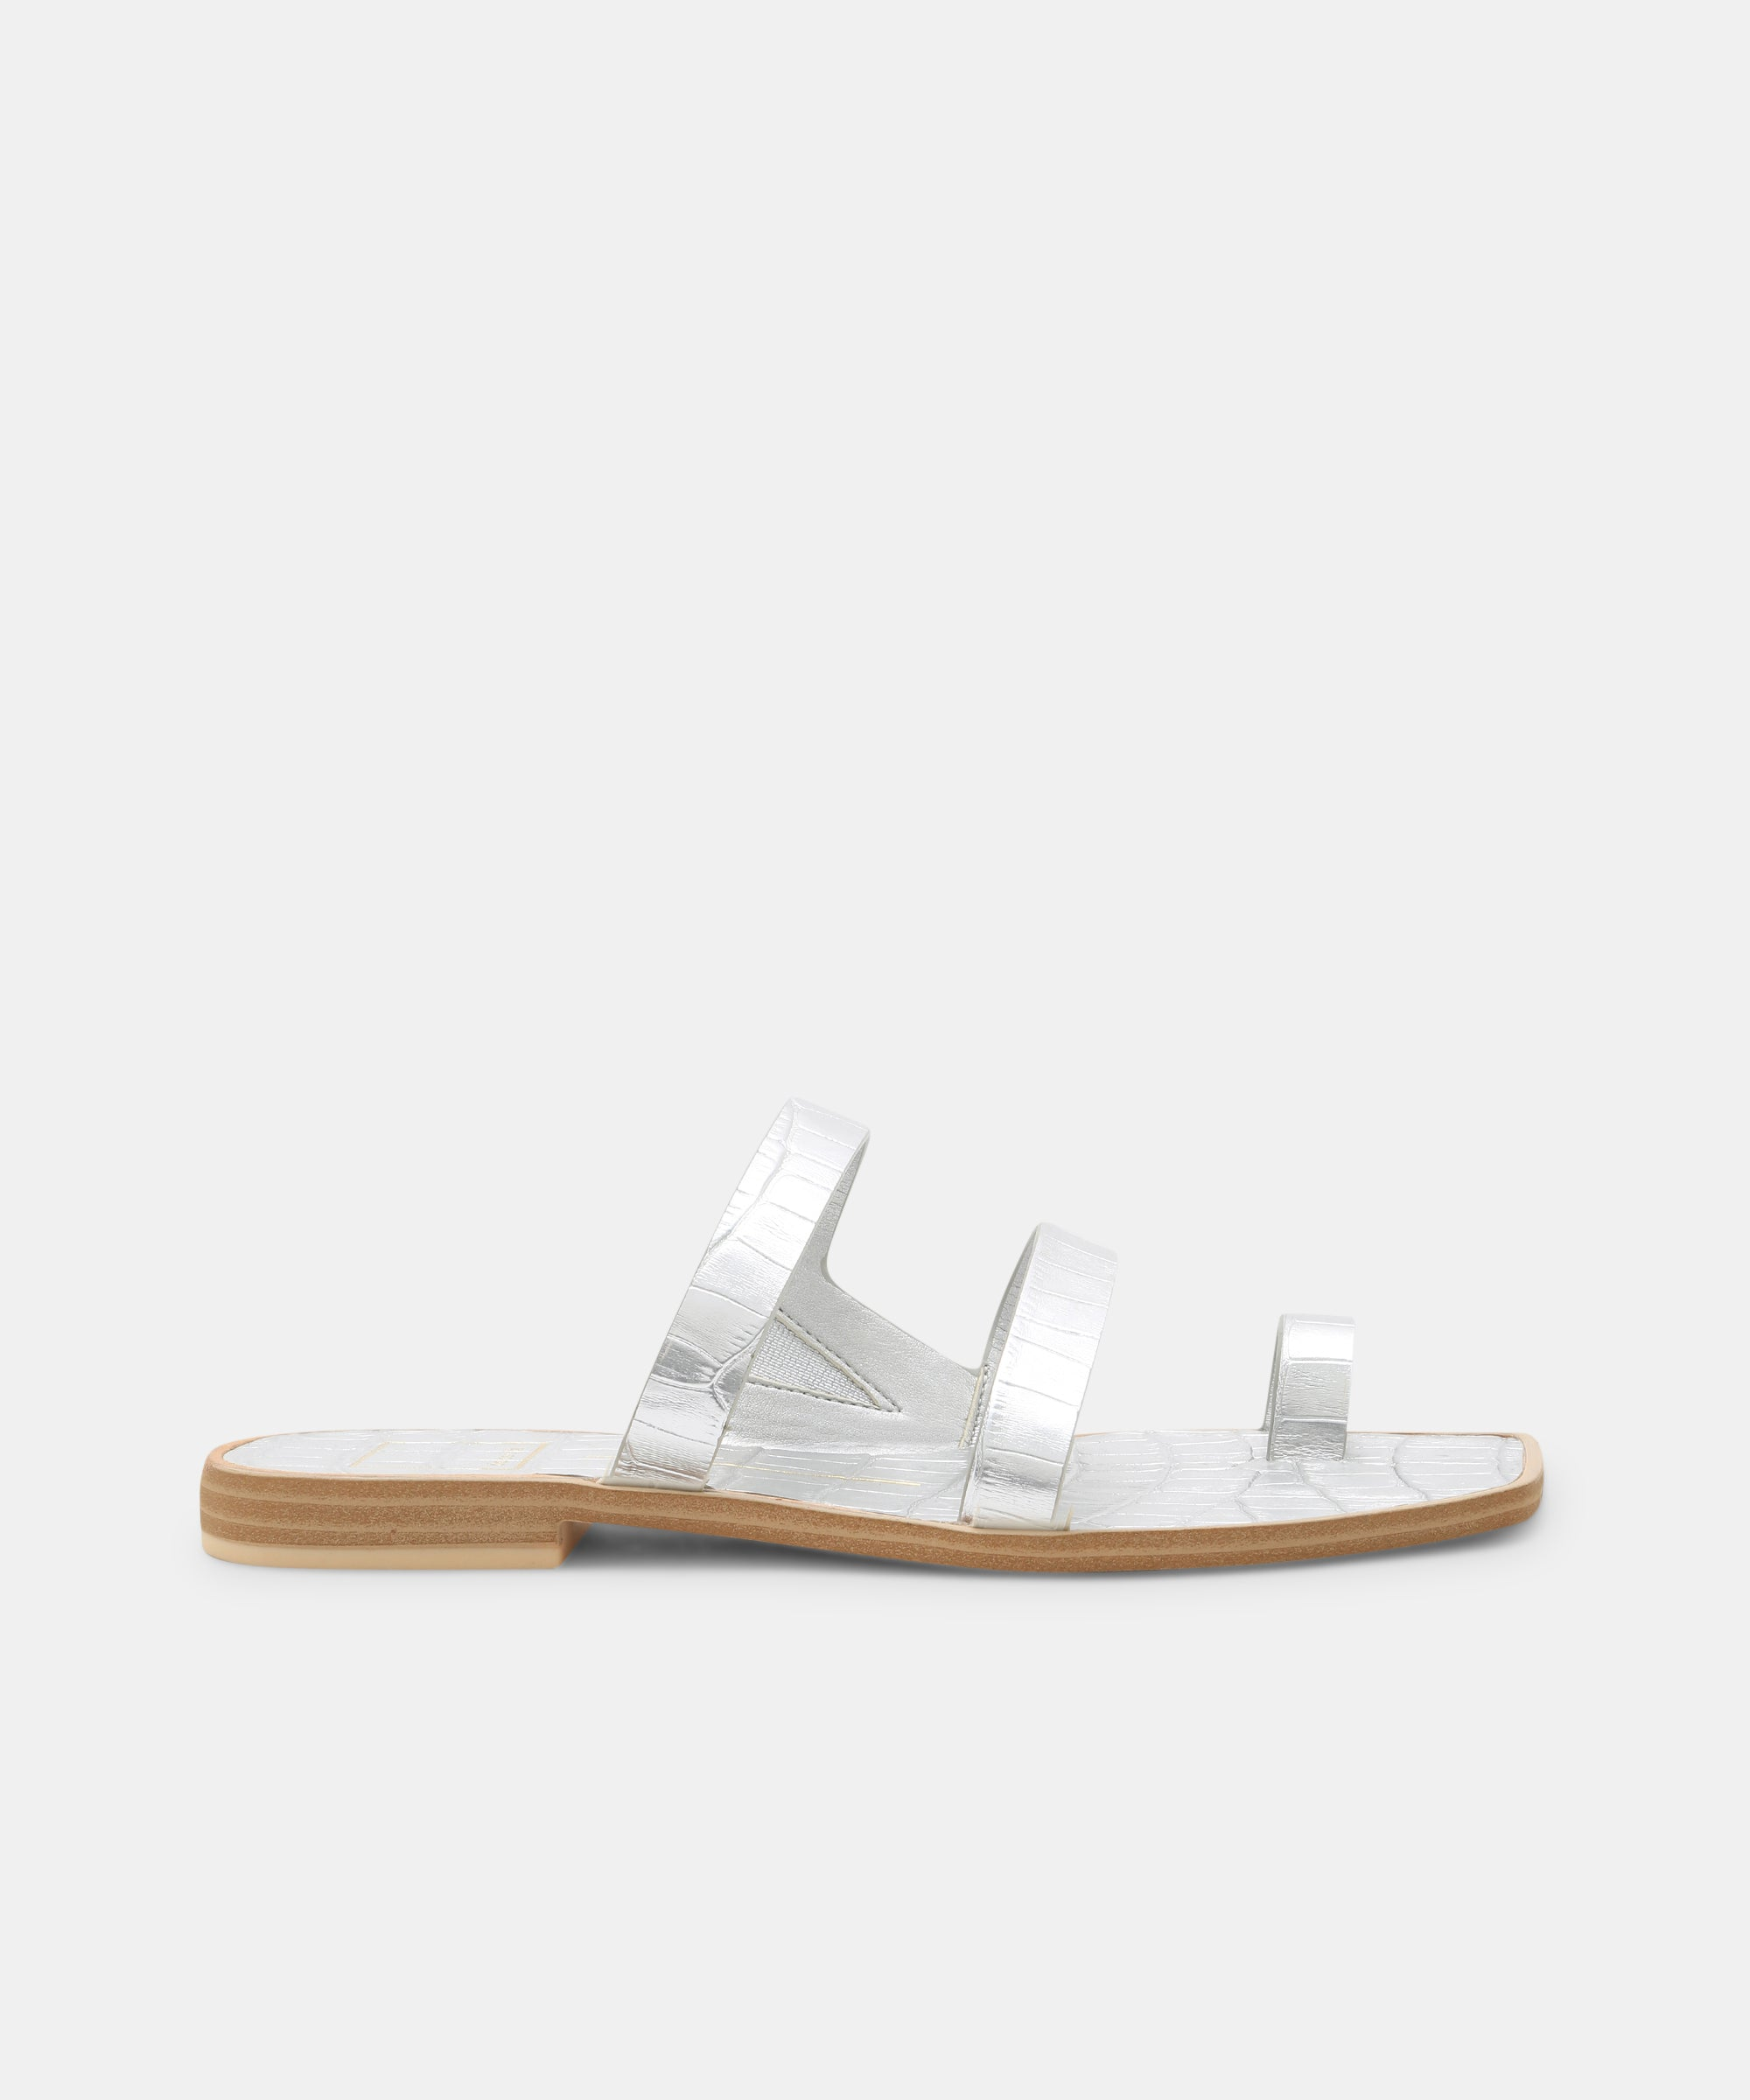 ISALA SANDALS IN SILVER – Dolce Vita